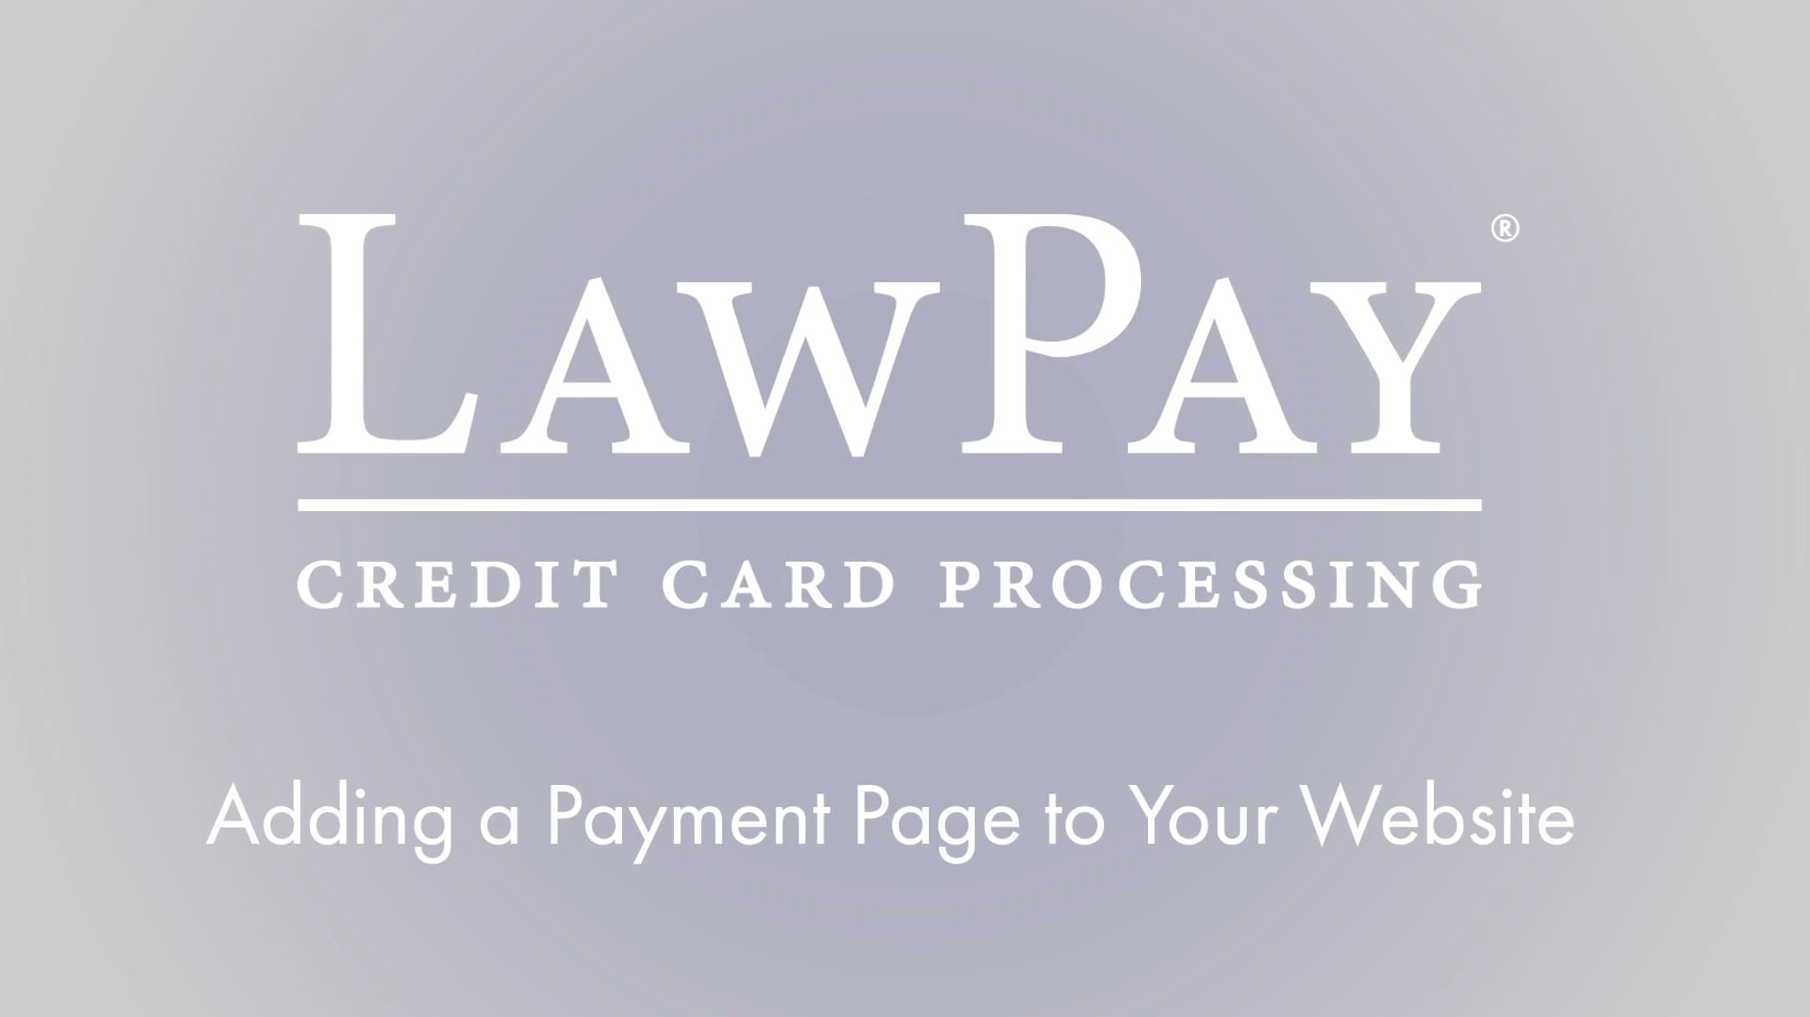 Add a Payment Page